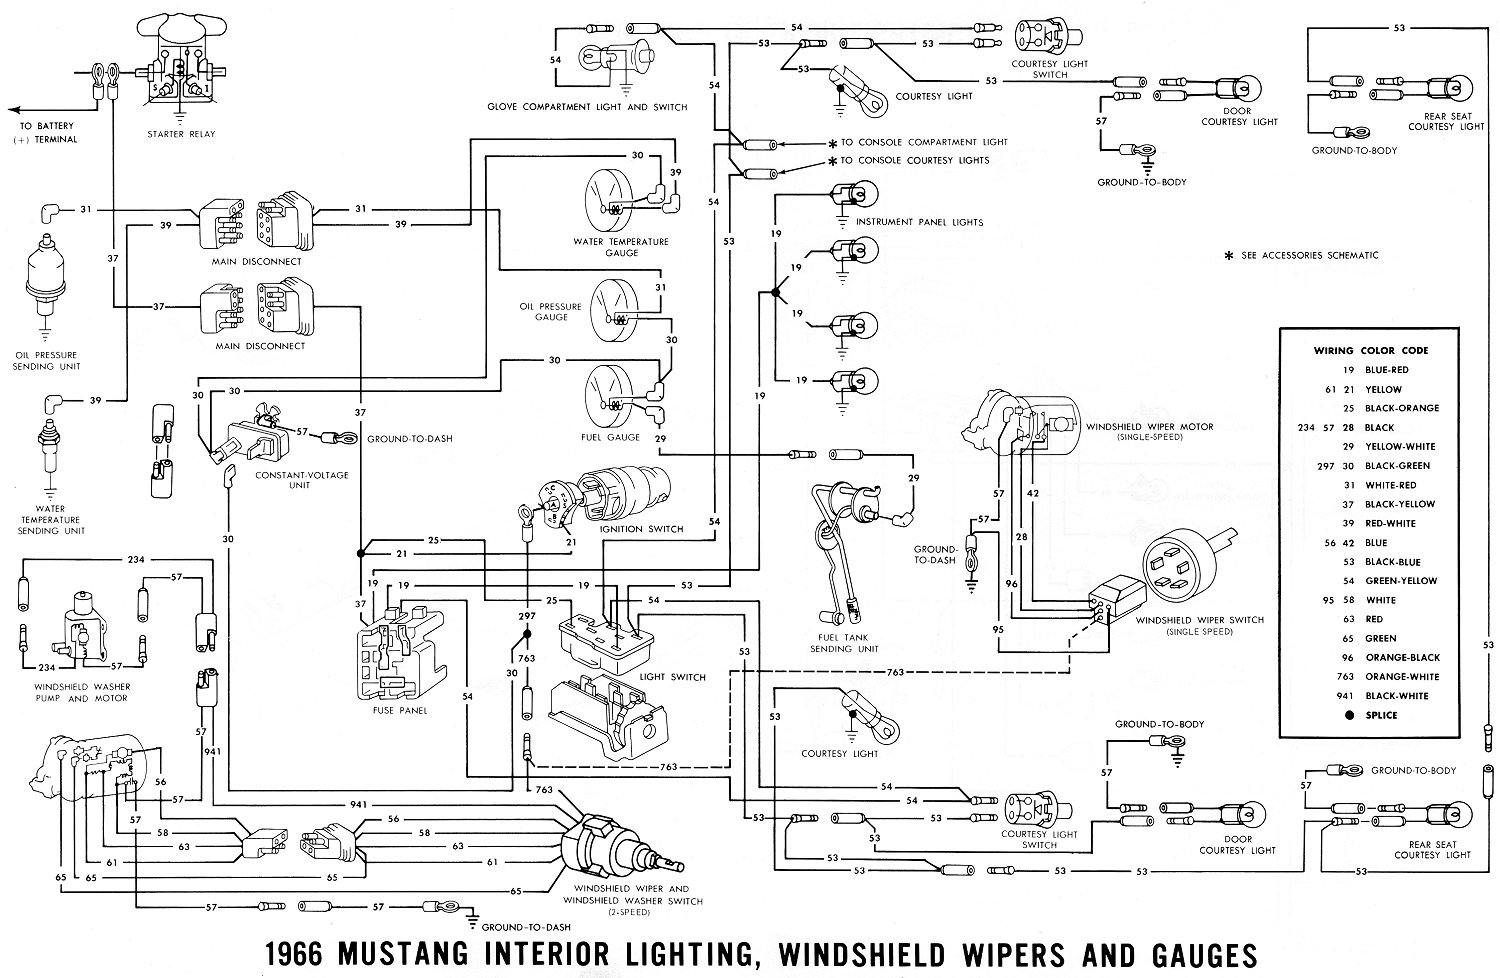 66inter1 1966 mustang wiring diagram 1966 mustang ignition wiring diagram 1965 ford mustang wiring diagrams at gsmportal.co